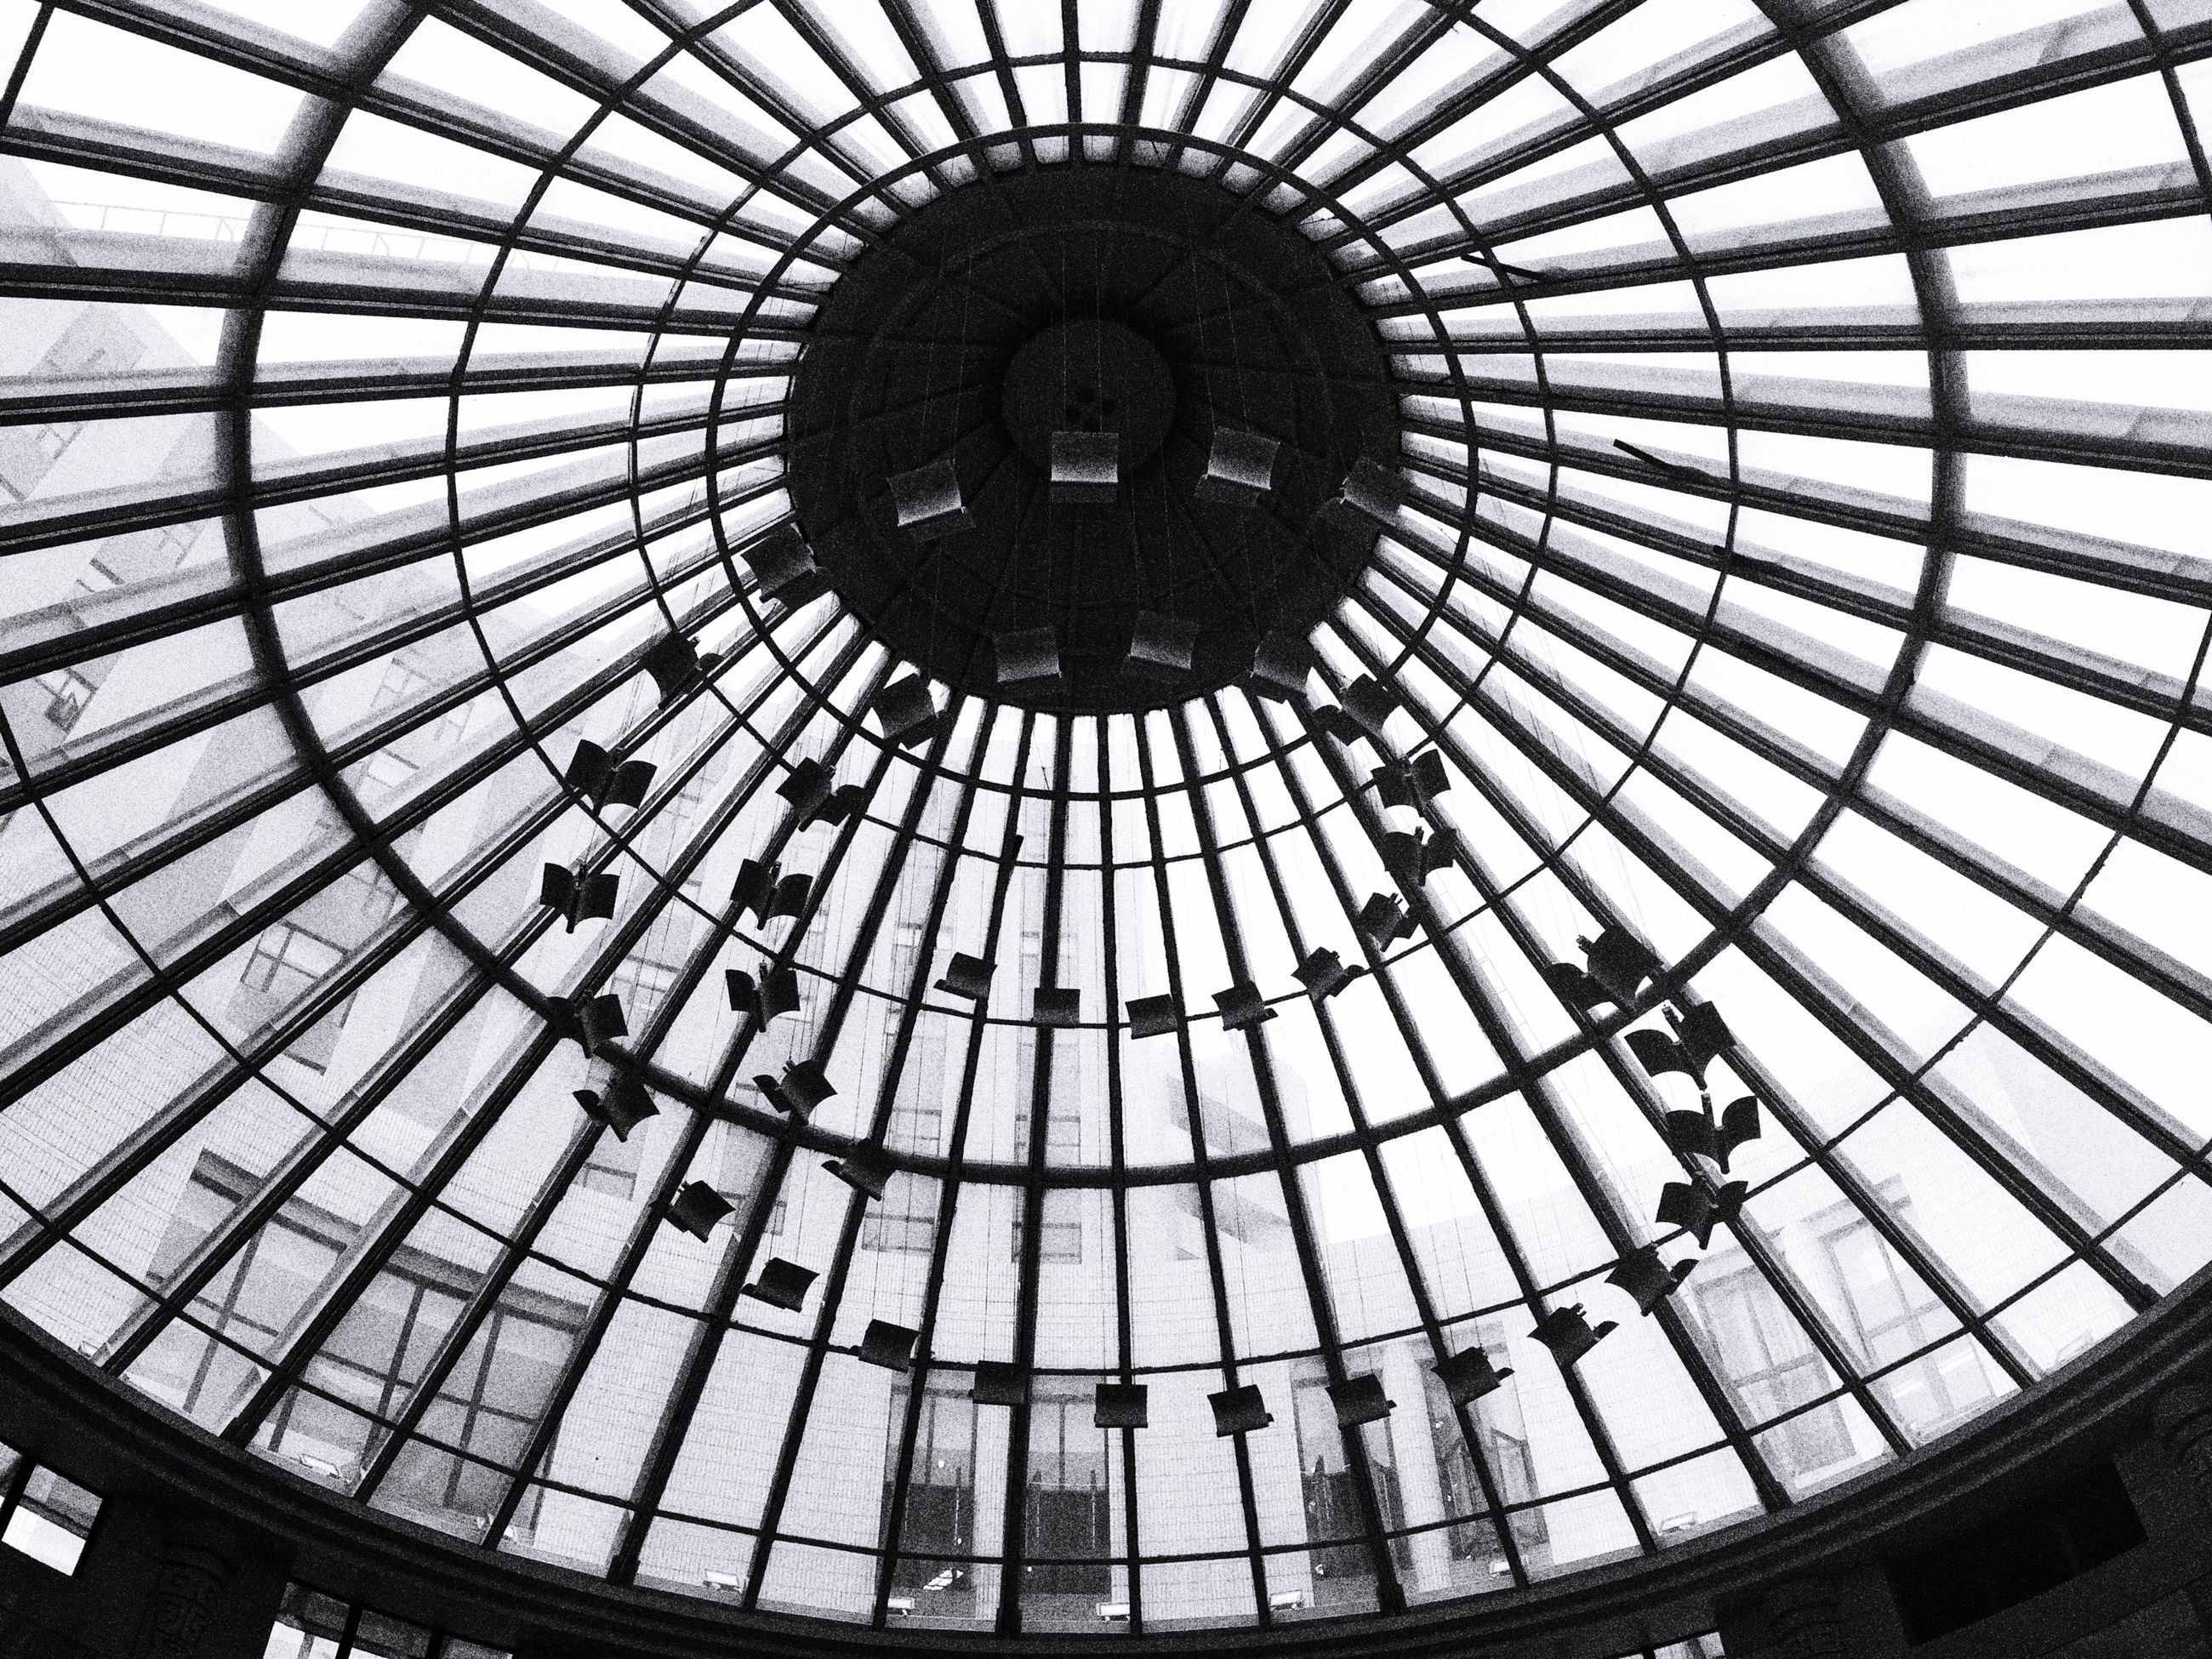 indoors, ceiling, architecture, low angle view, built structure, skylight, glass - material, pattern, architectural feature, directly below, circle, modern, dome, geometric shape, interior, transparent, design, famous place, shopping mall, travel